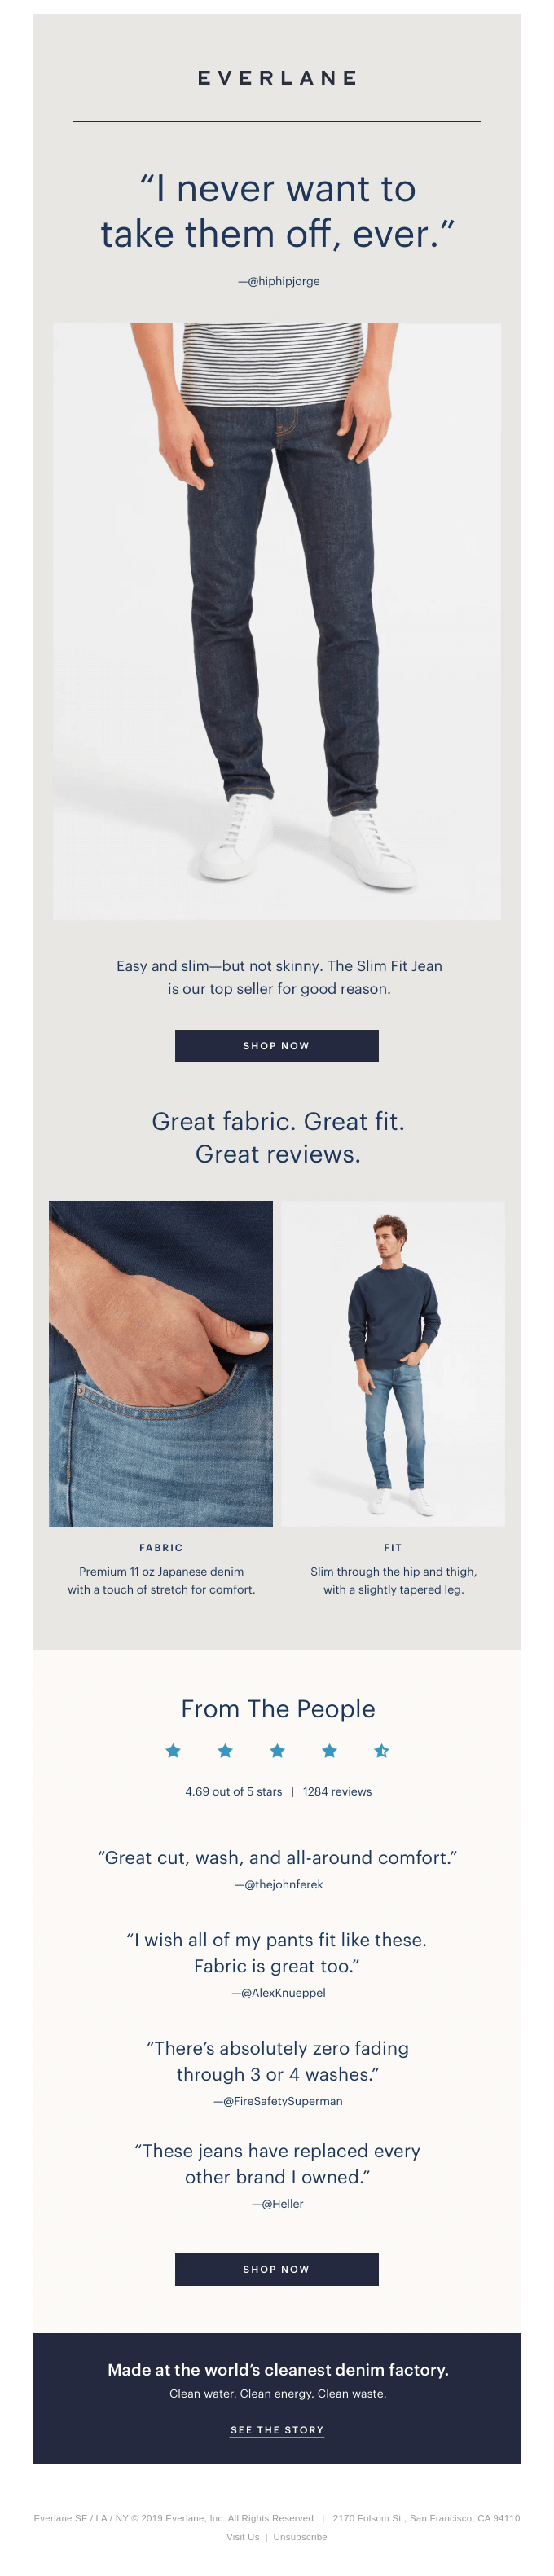 Meet Our Most Popular Jeans